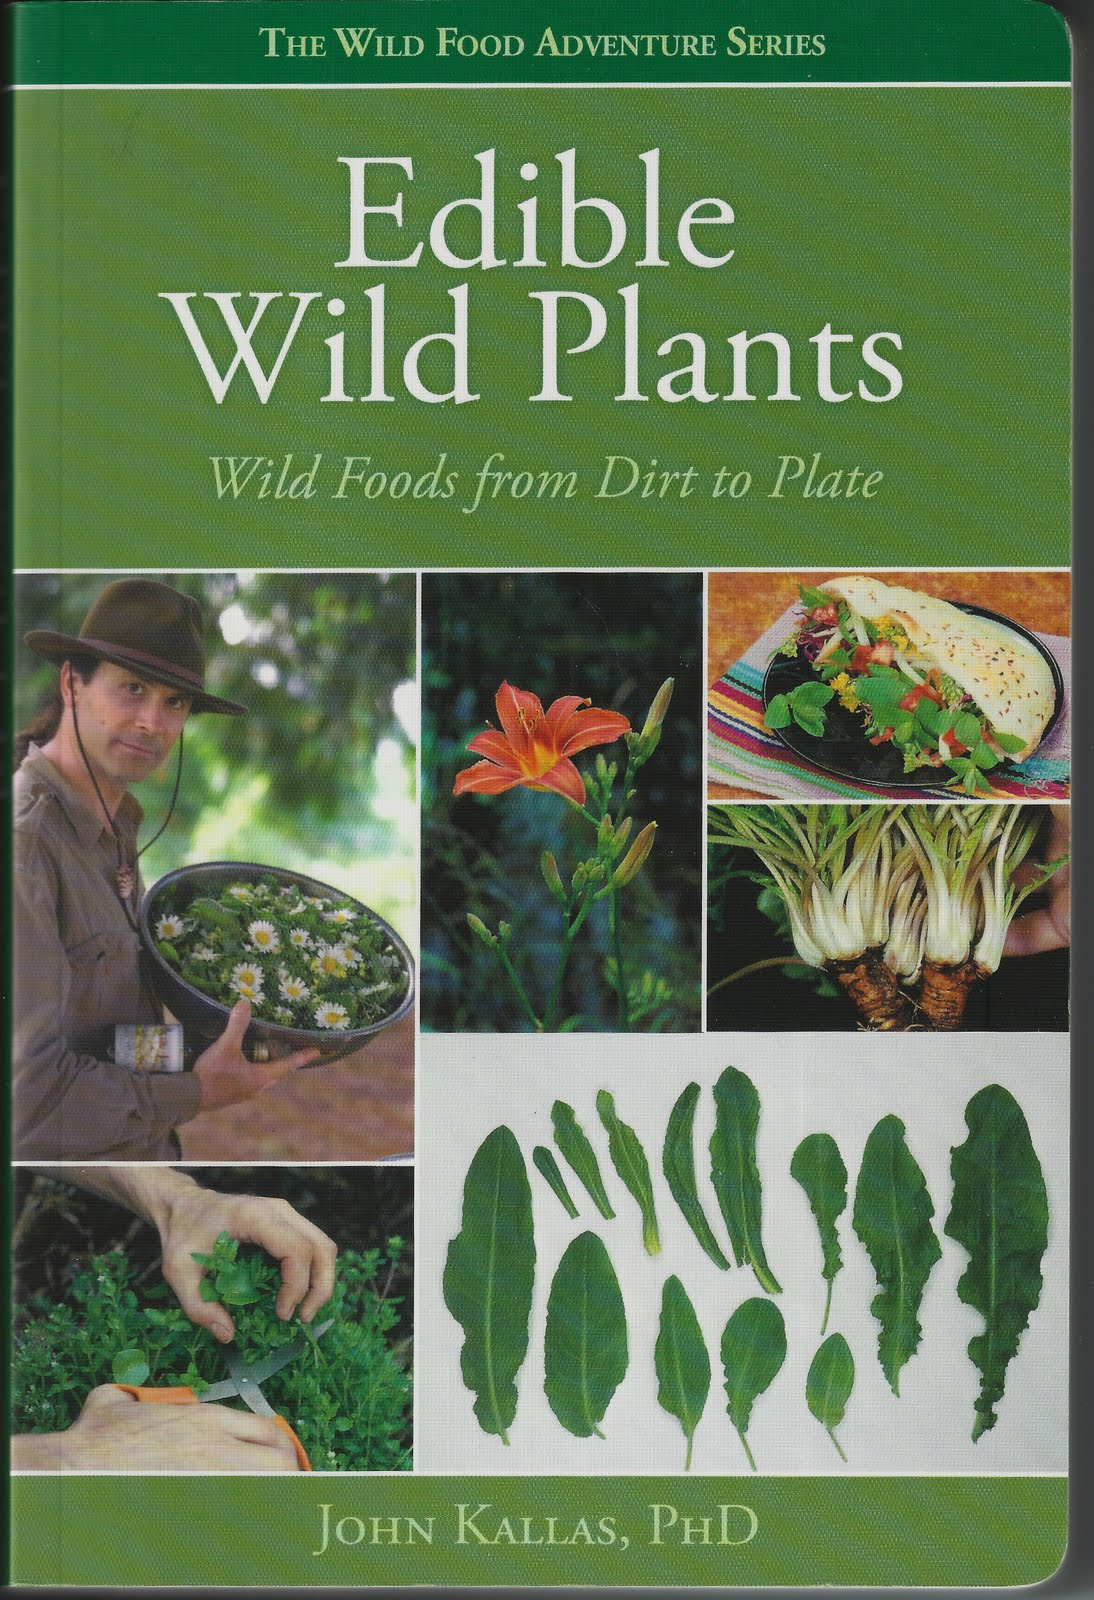 Book of edible plants for survival of